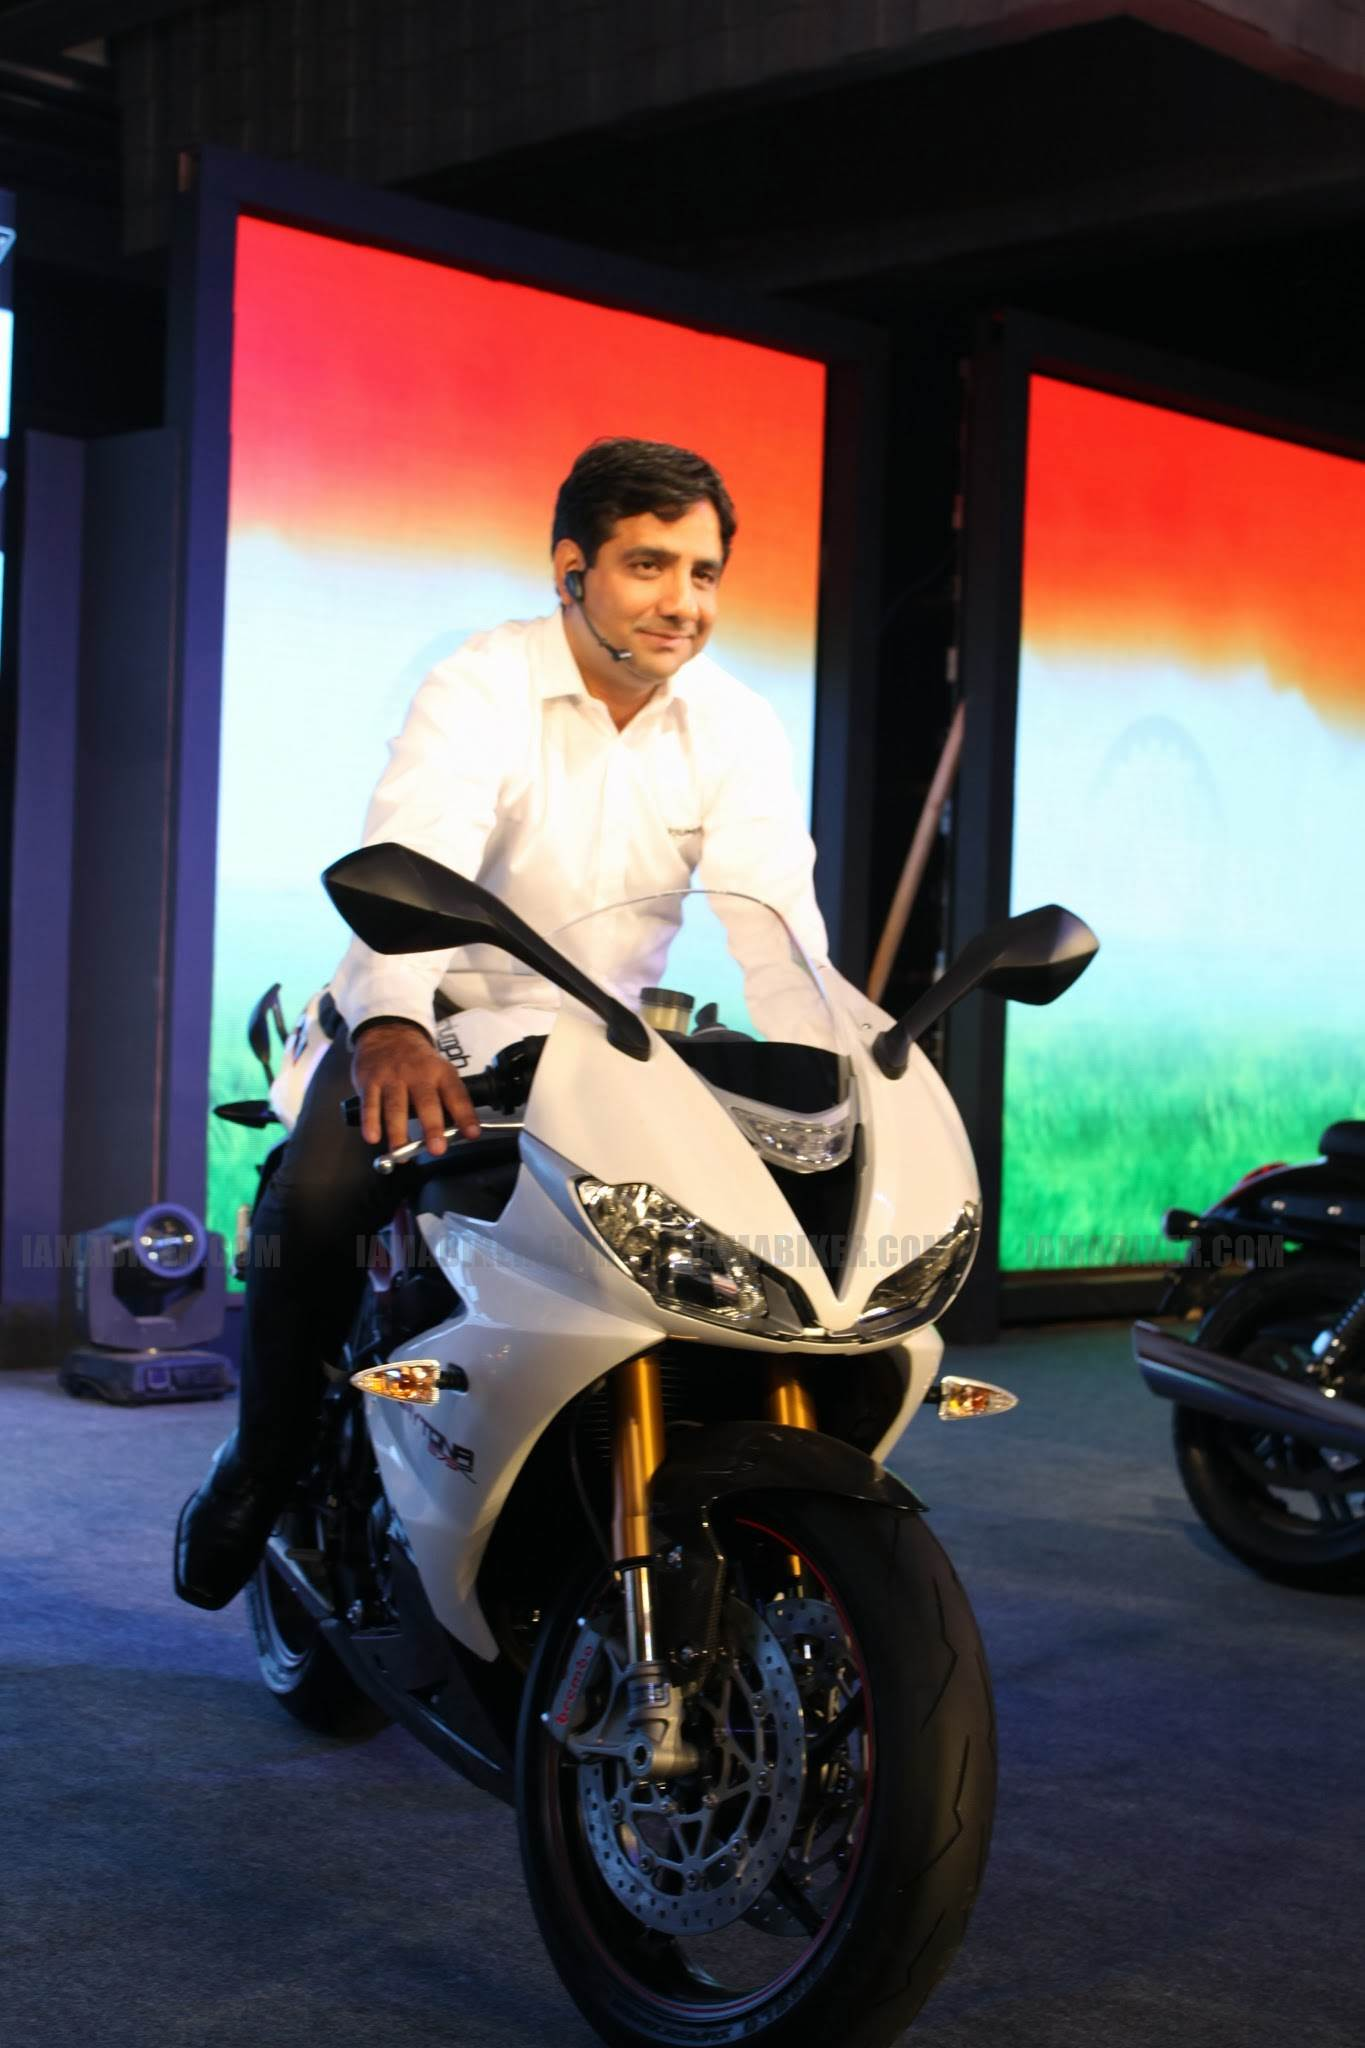 triumph motorcycles india launch - 31